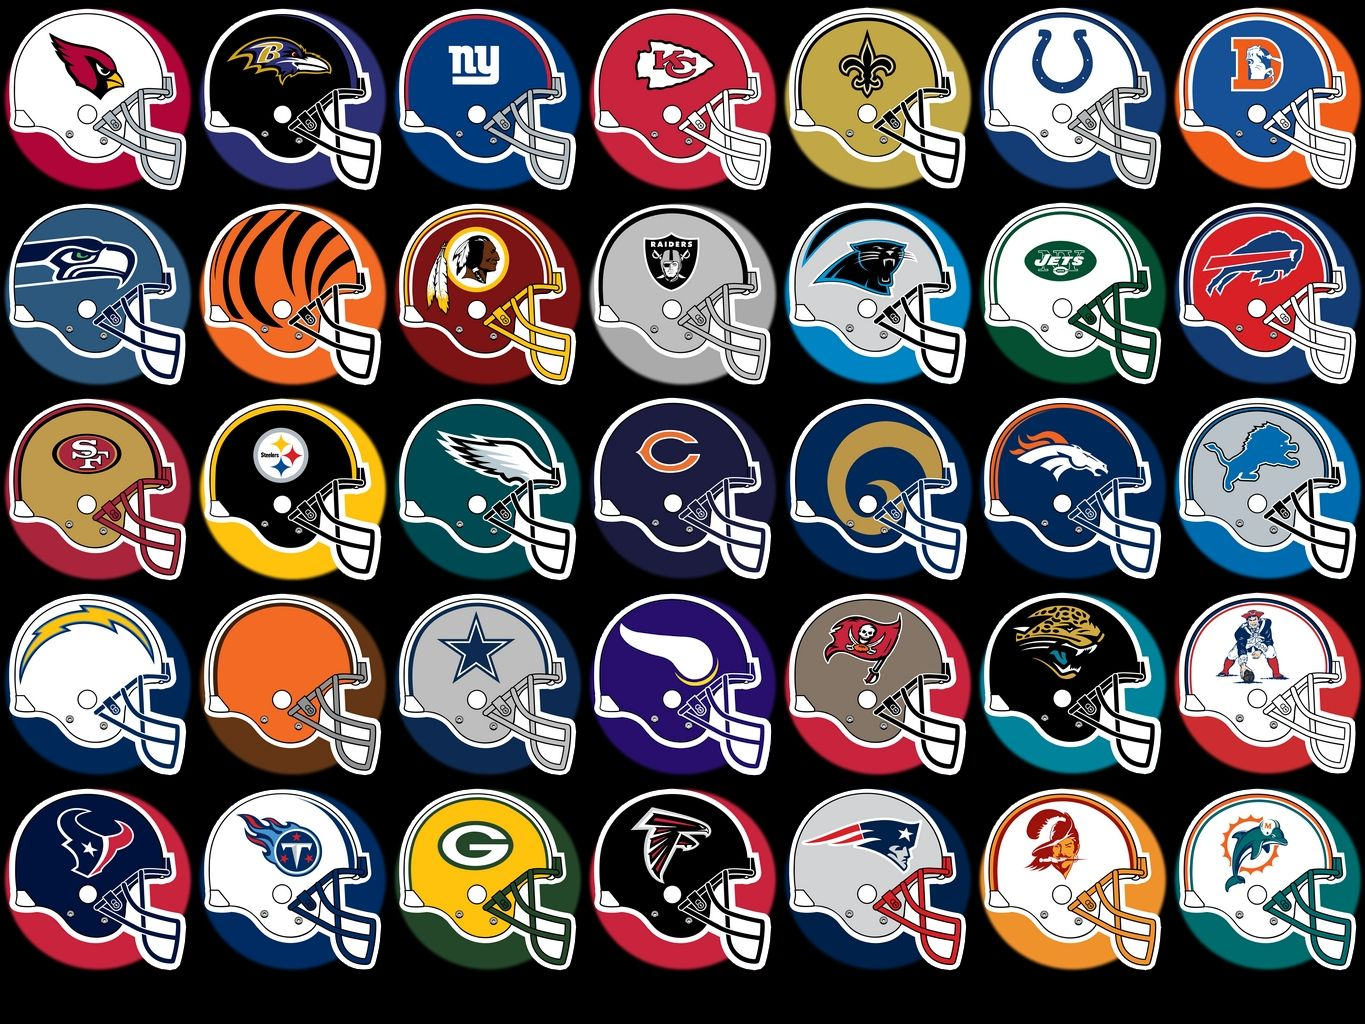 Resultado de imagem para all american football nfl teams logos with names